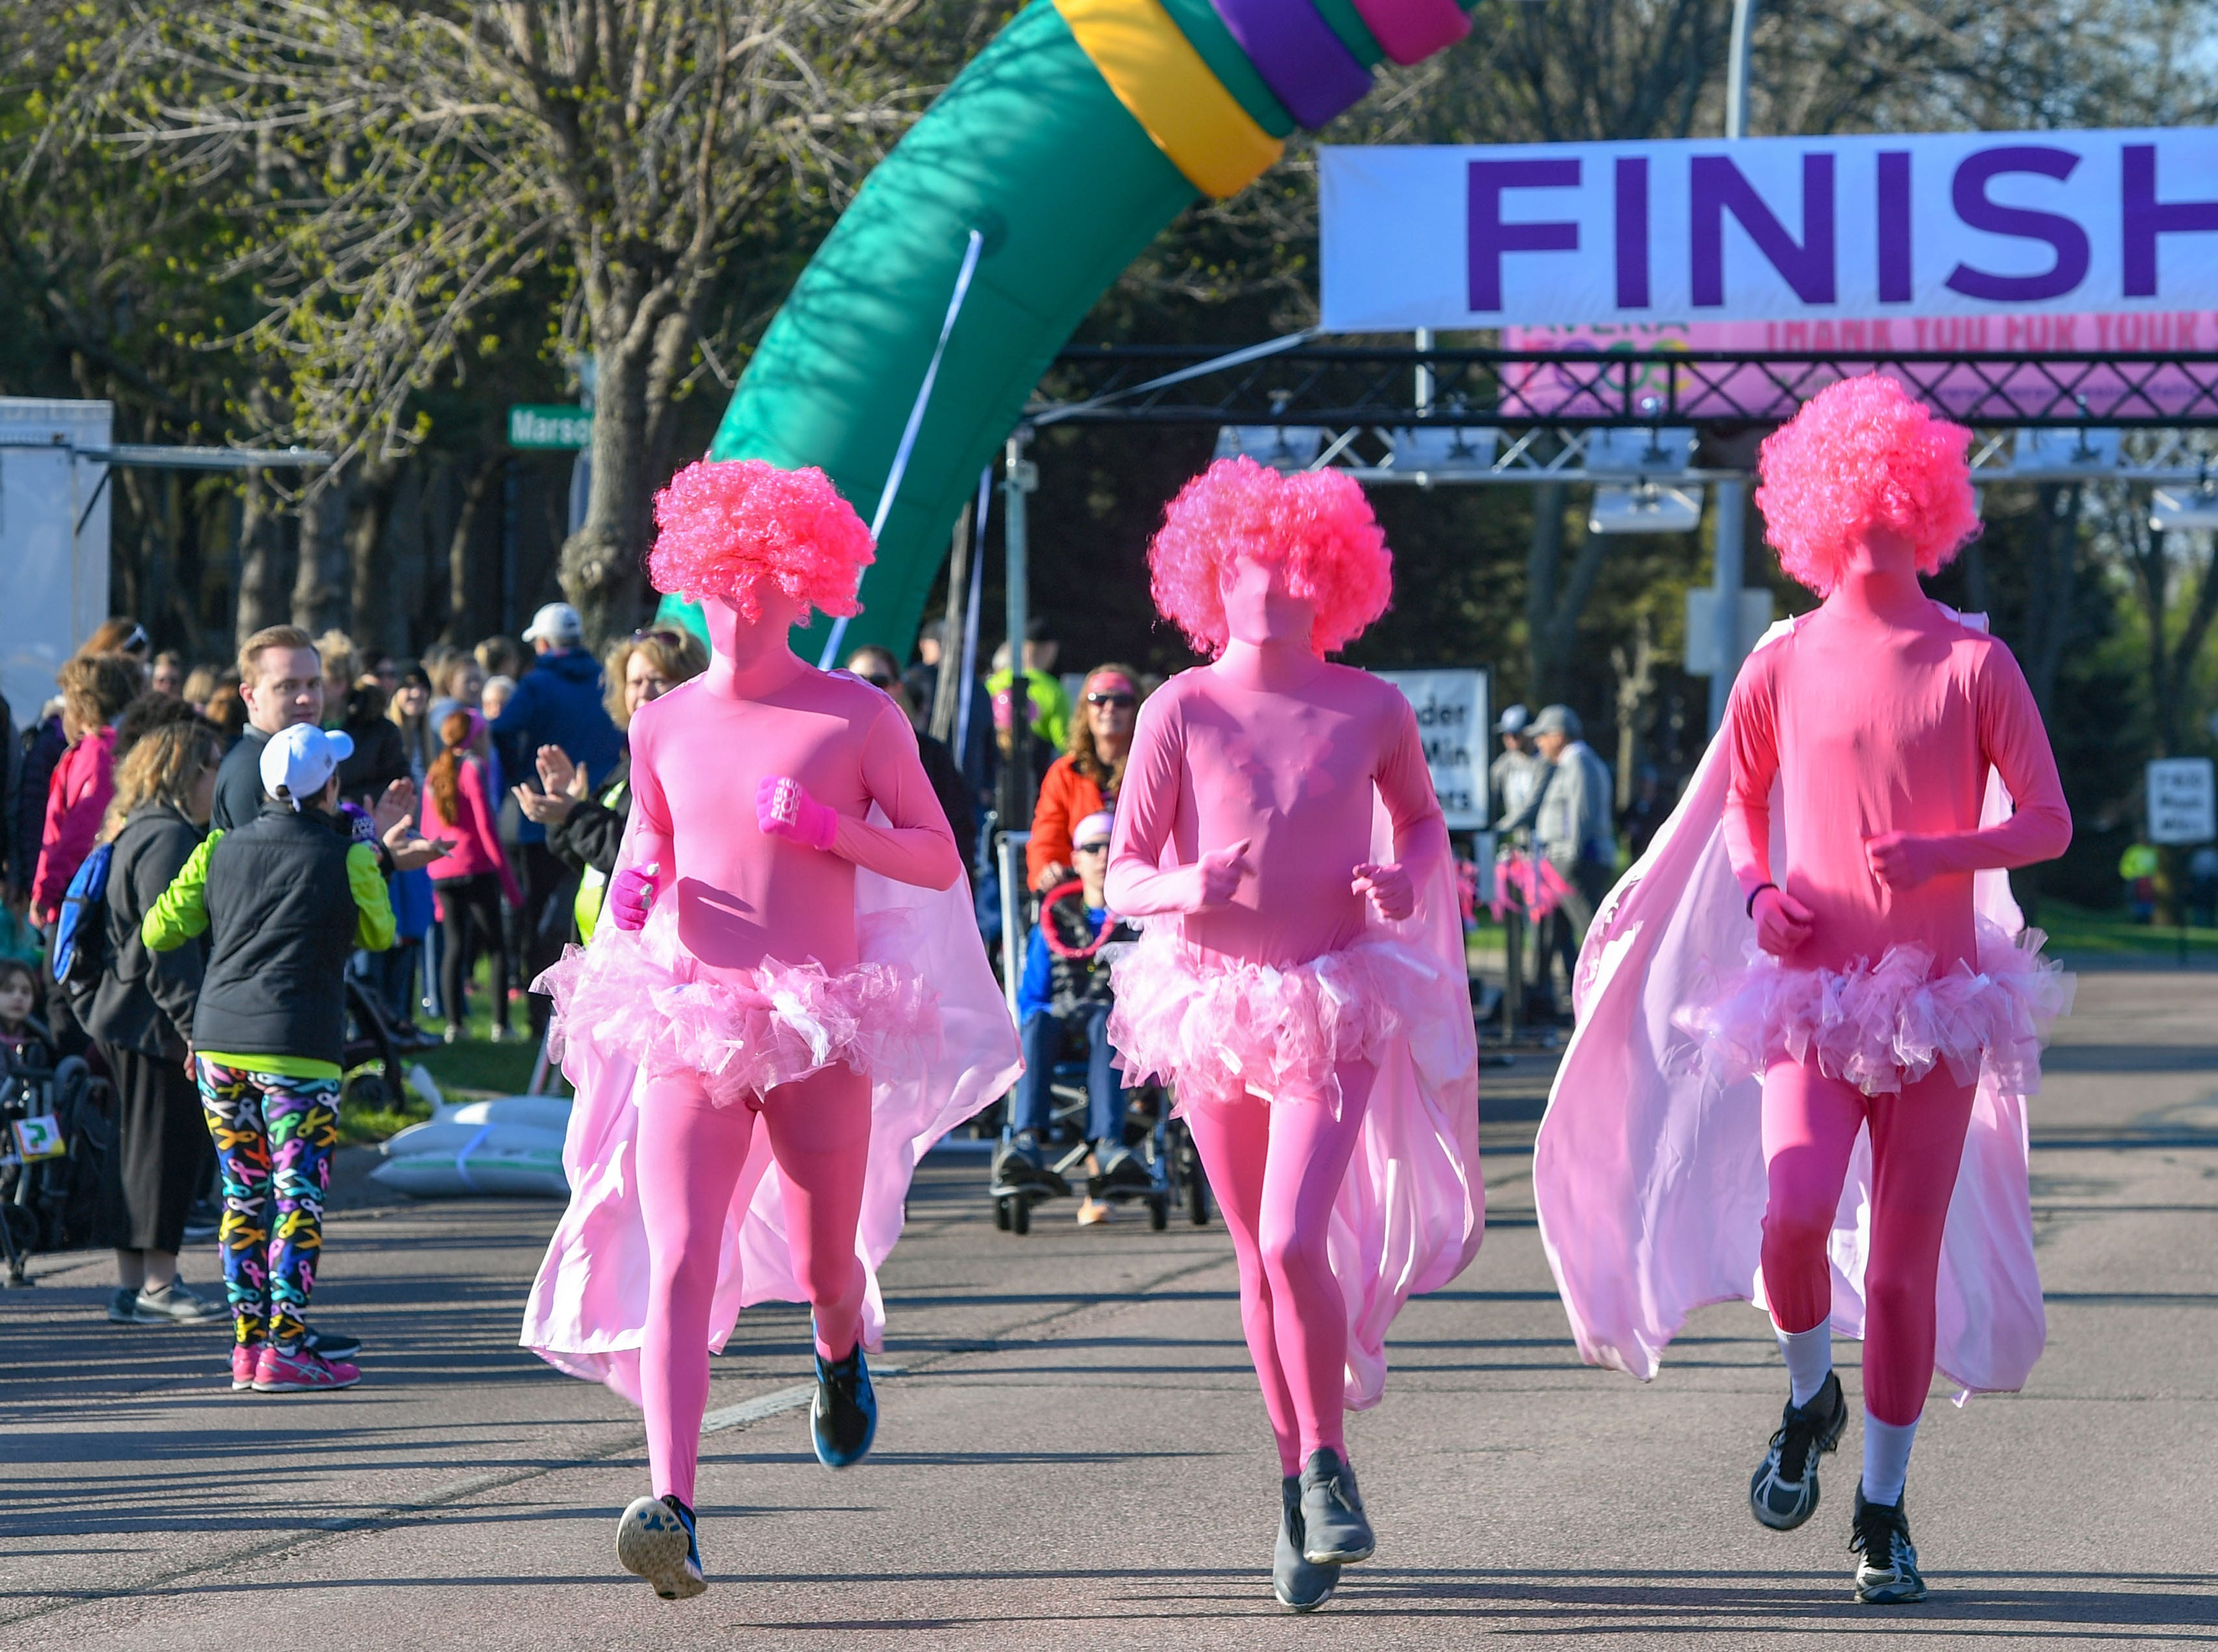 Runners in full pink costumes, including capes and wigs, bring up the rear in the 5K race at the 31st Avera Health Race Against Cancer on Saturday morning, May 11, in Sioux Falls.